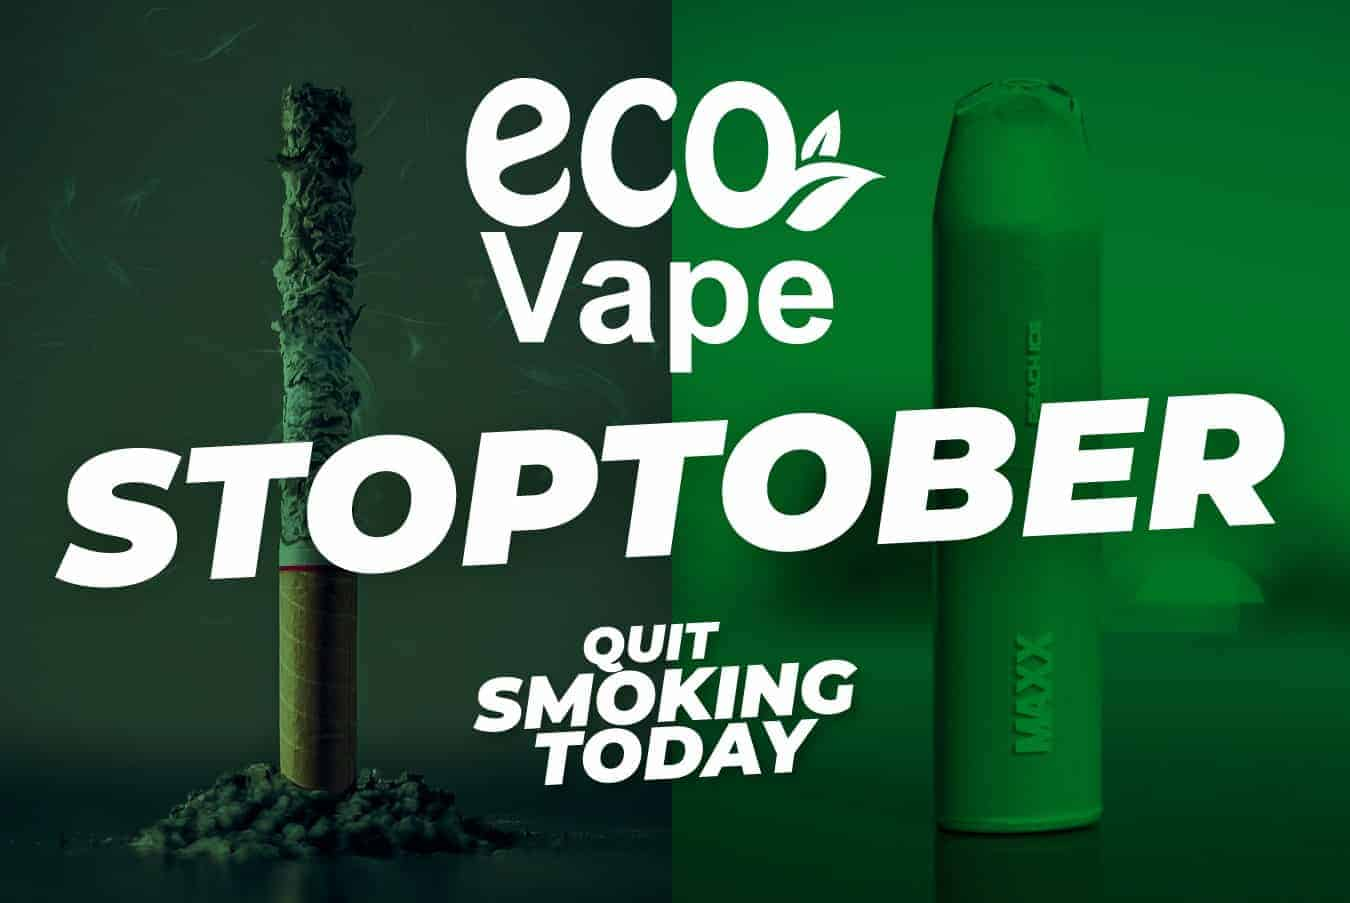 quit smoking today with eco vape